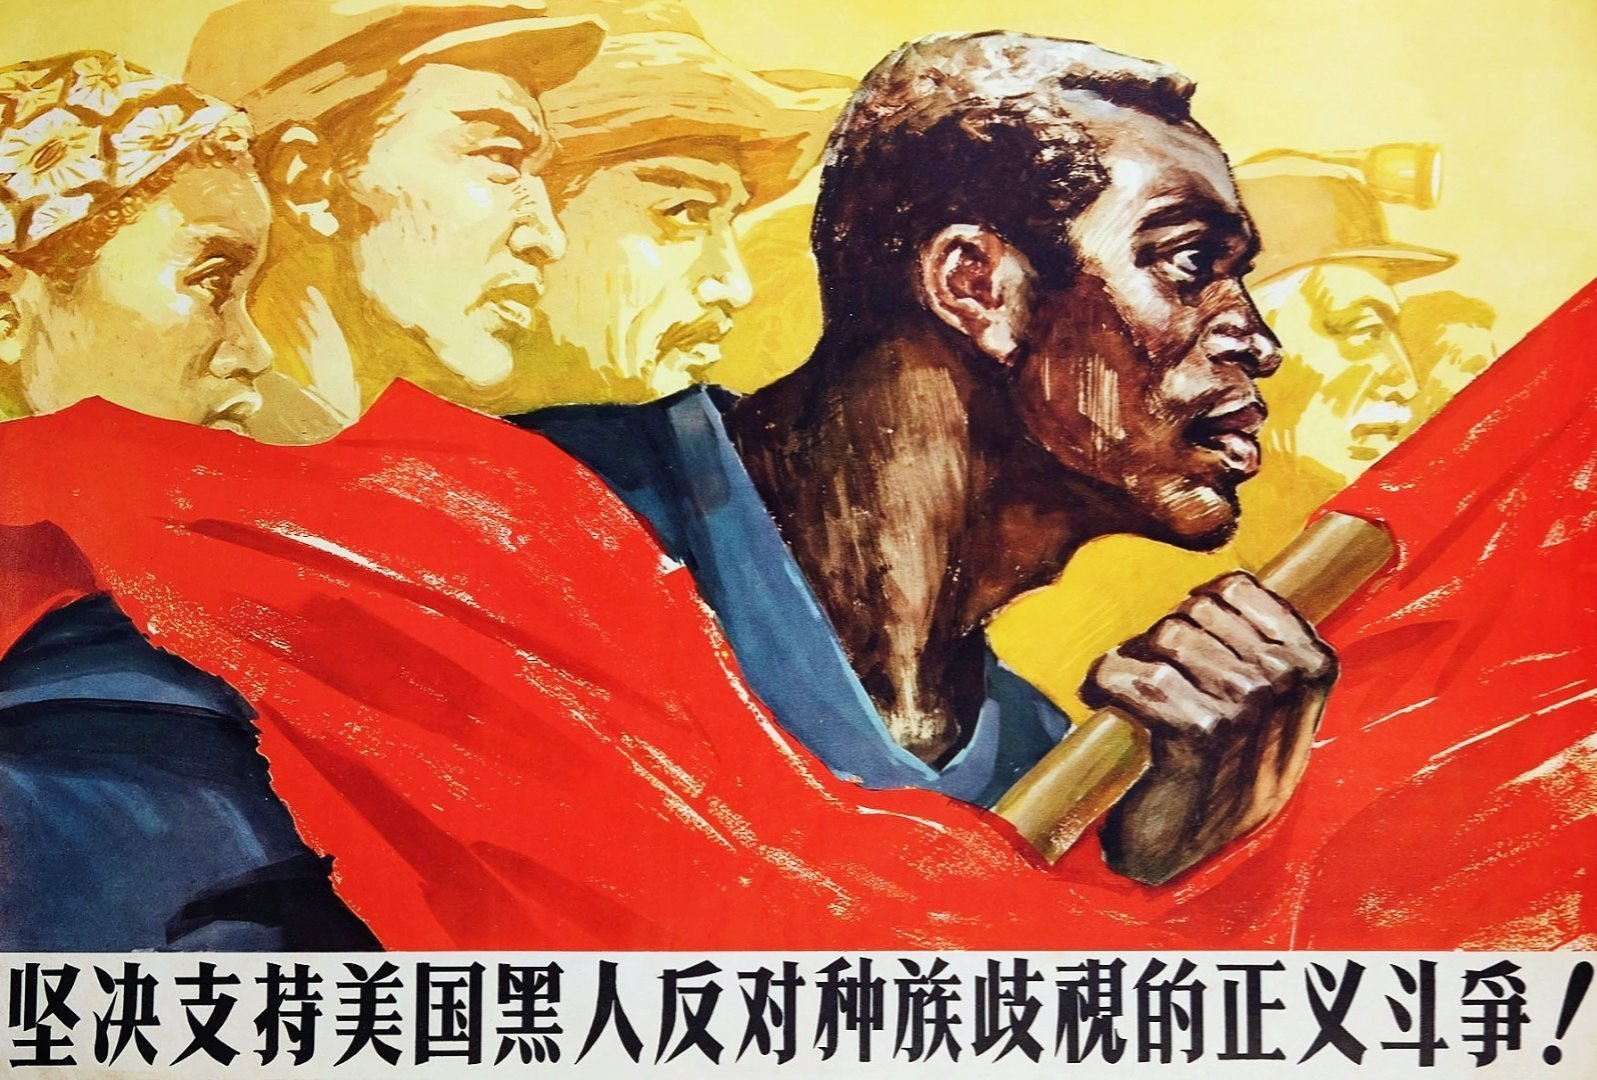 lithographic poster of a black man leading a battle with asian figures behind him